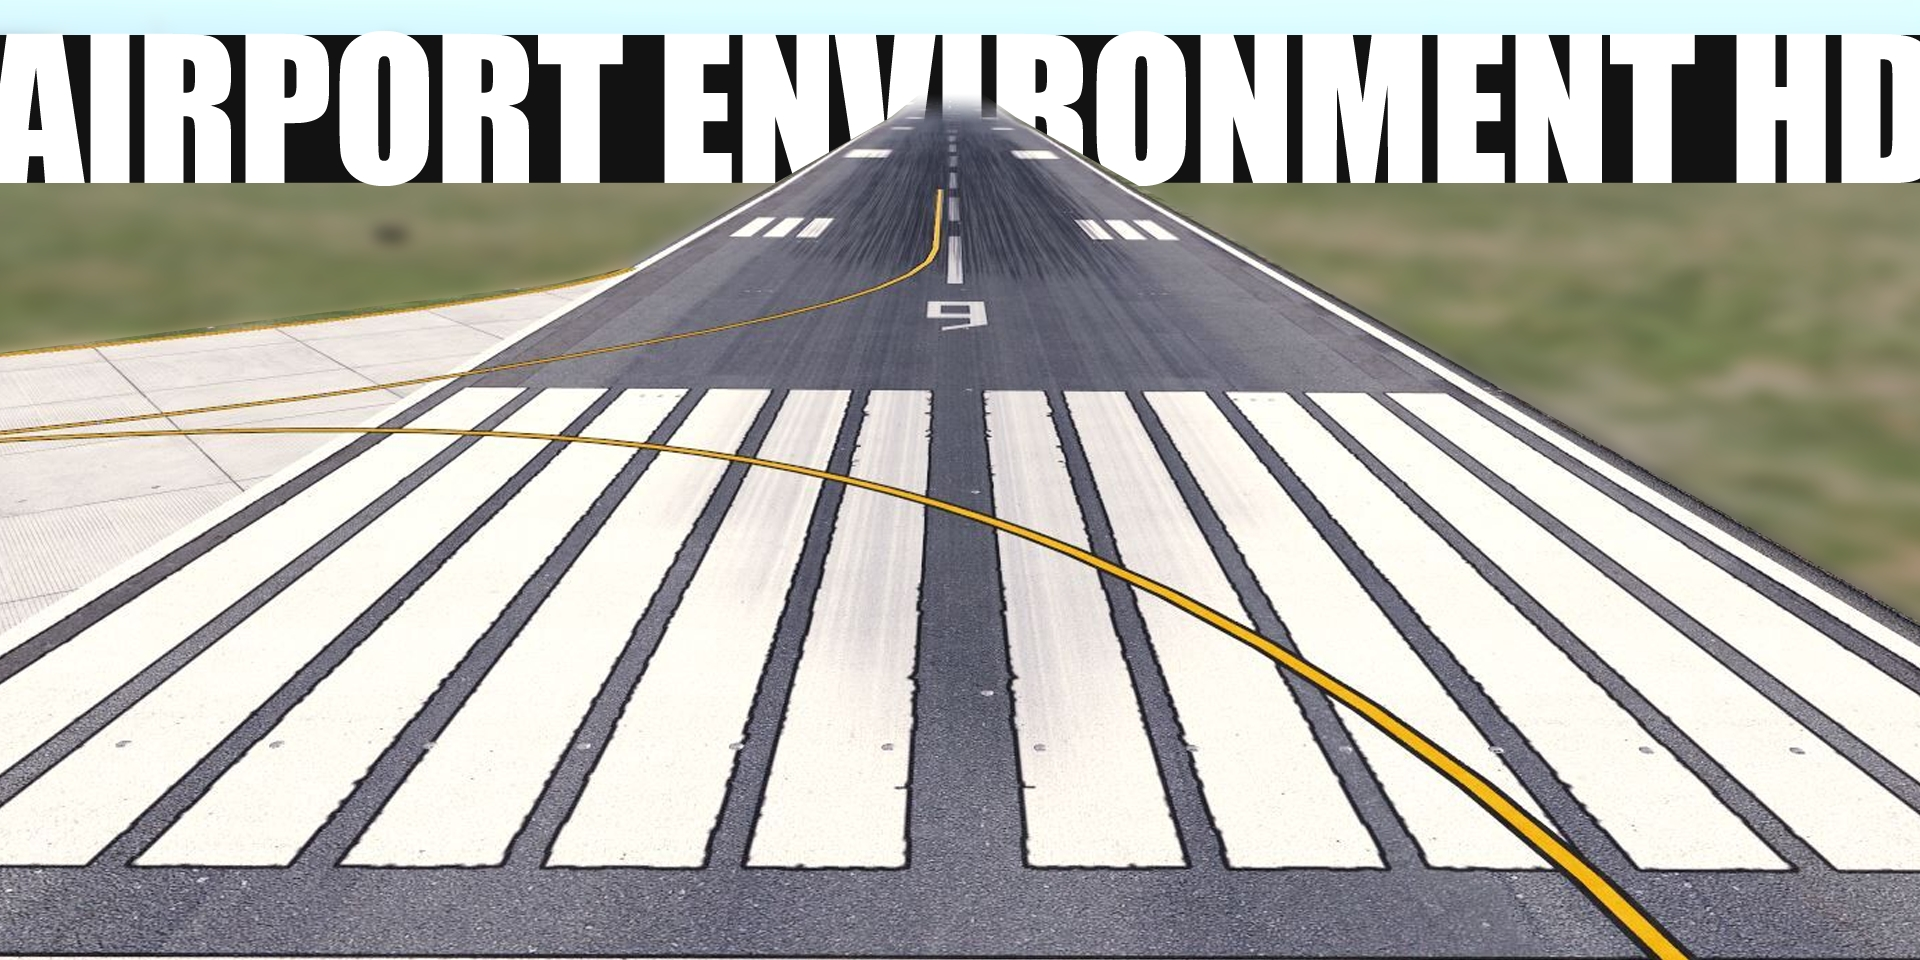 Freeware Review: Airport Environment HD by MisterX6